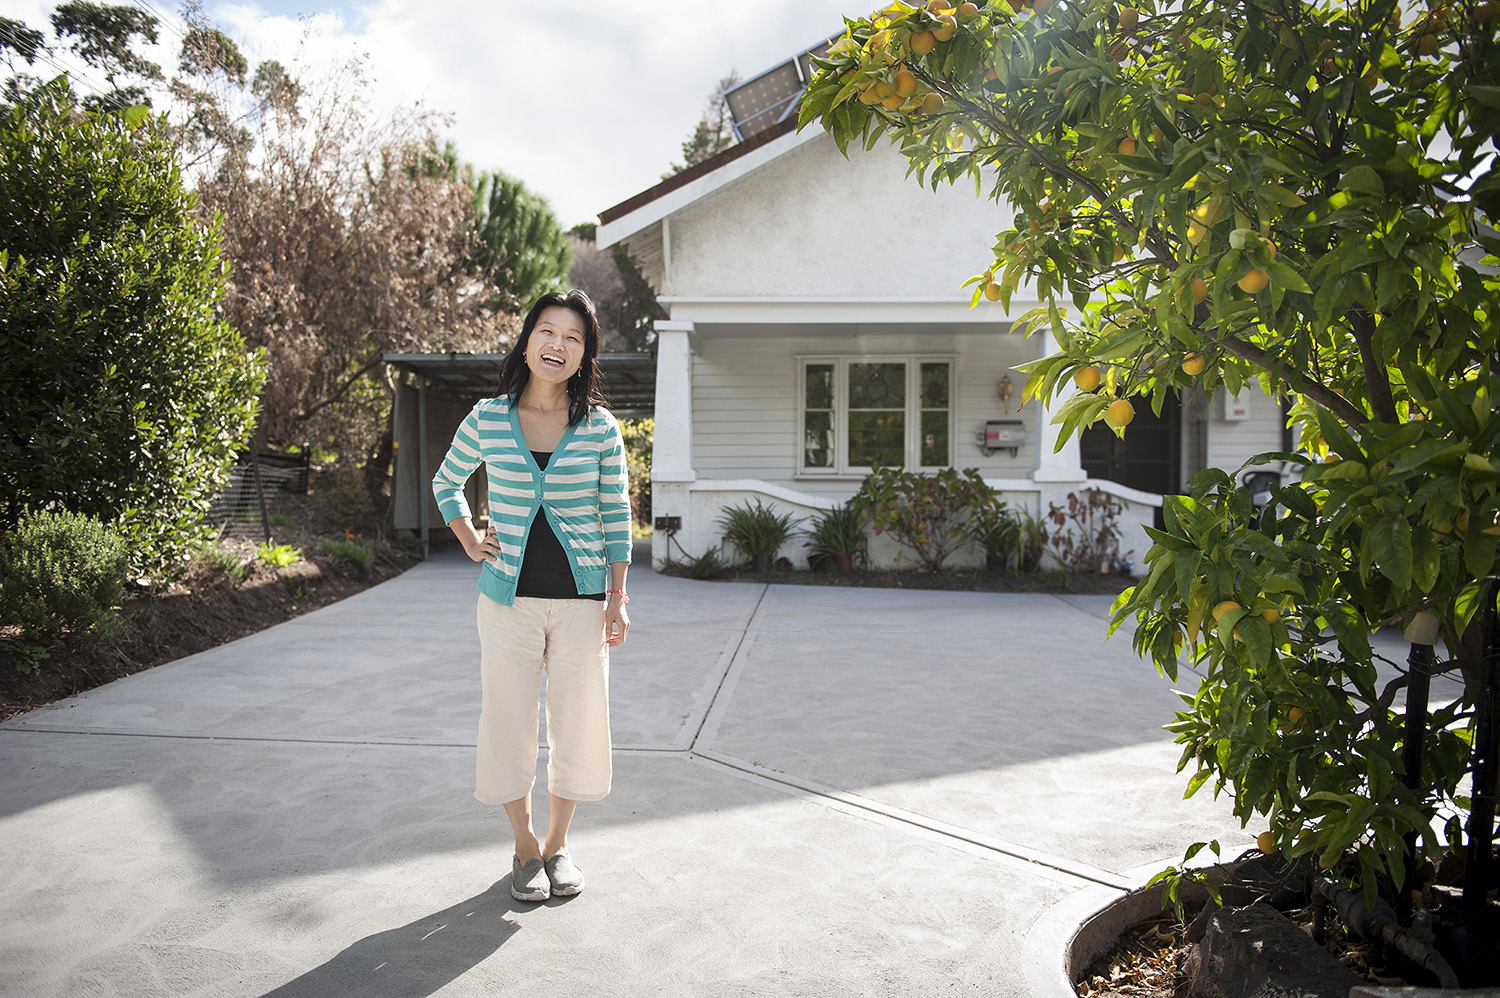 Property Investor tina koh in front of her home